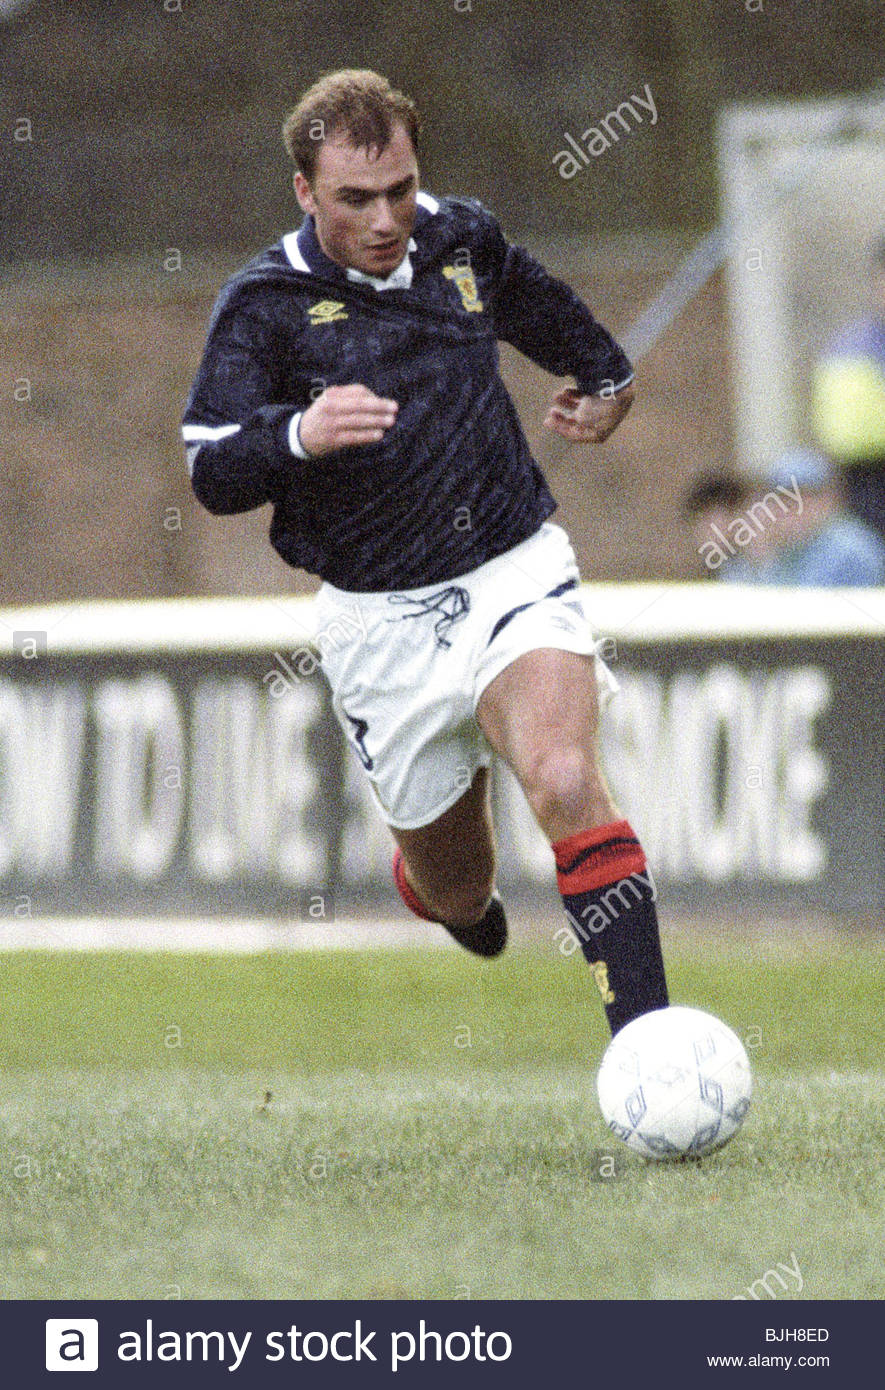 18/11/92 EUROPEAN UNDER 21 CHAMPIONSHIP SCOTLAND U21 V ITALY U21 (1-2) FIR PARK - MOTHERWELL Scotland's Gary - Stock Image